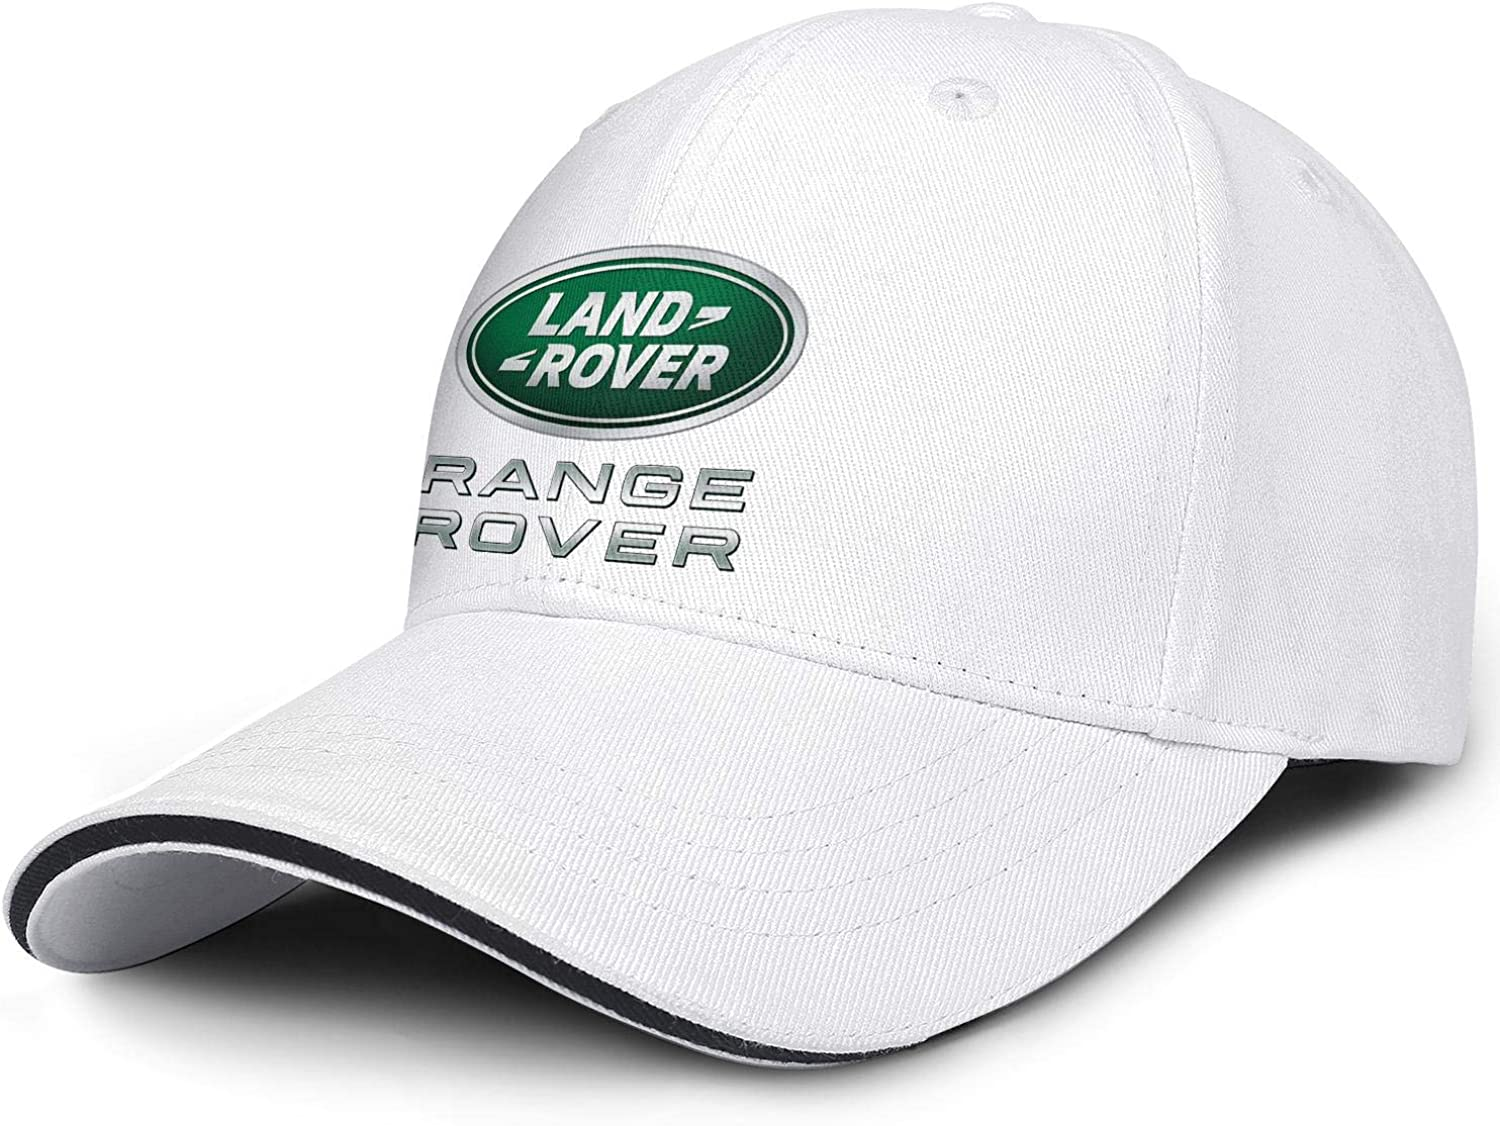 Top 9 Range Rover Apparel